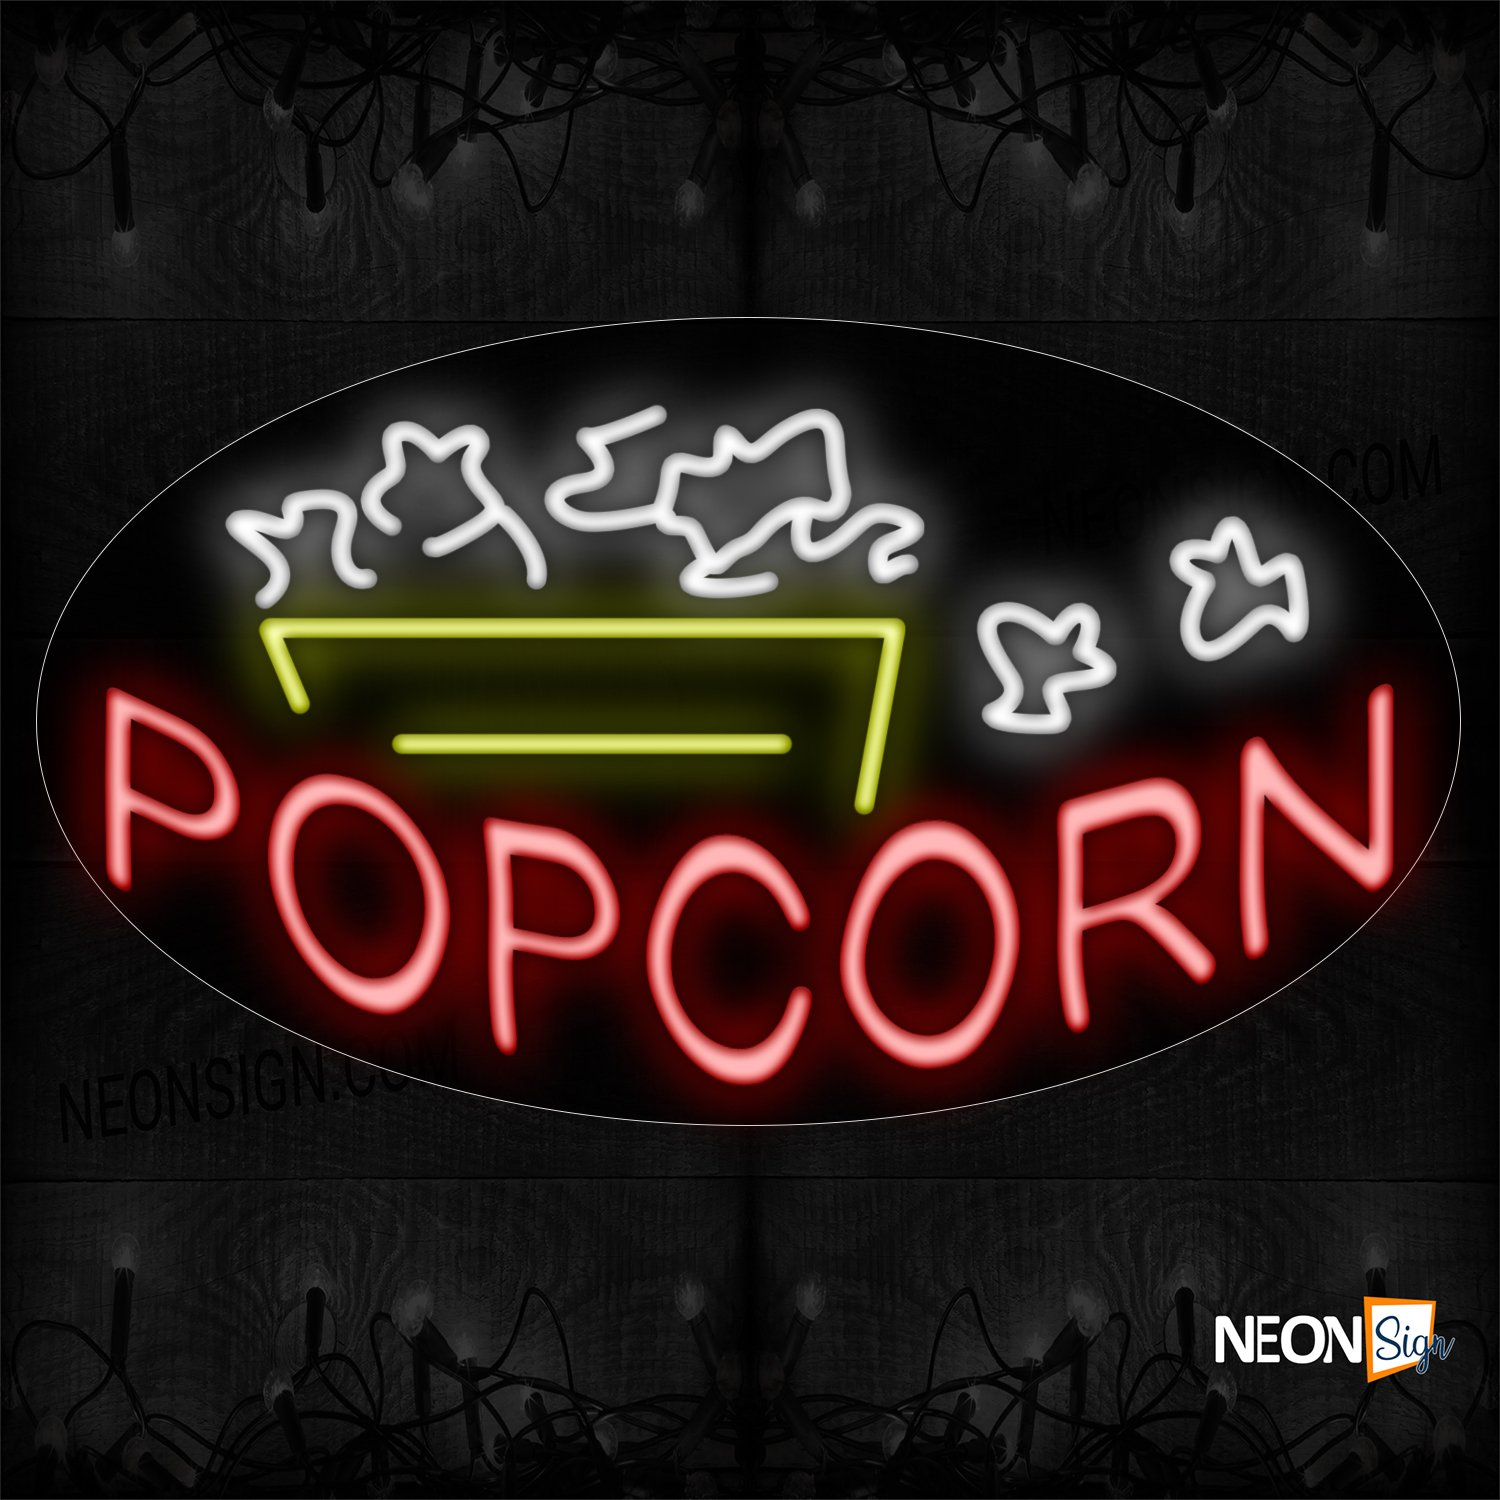 Image of 14367 Popcorn In Red With Logo Neon Sign_17x30 Contoured Black Backing